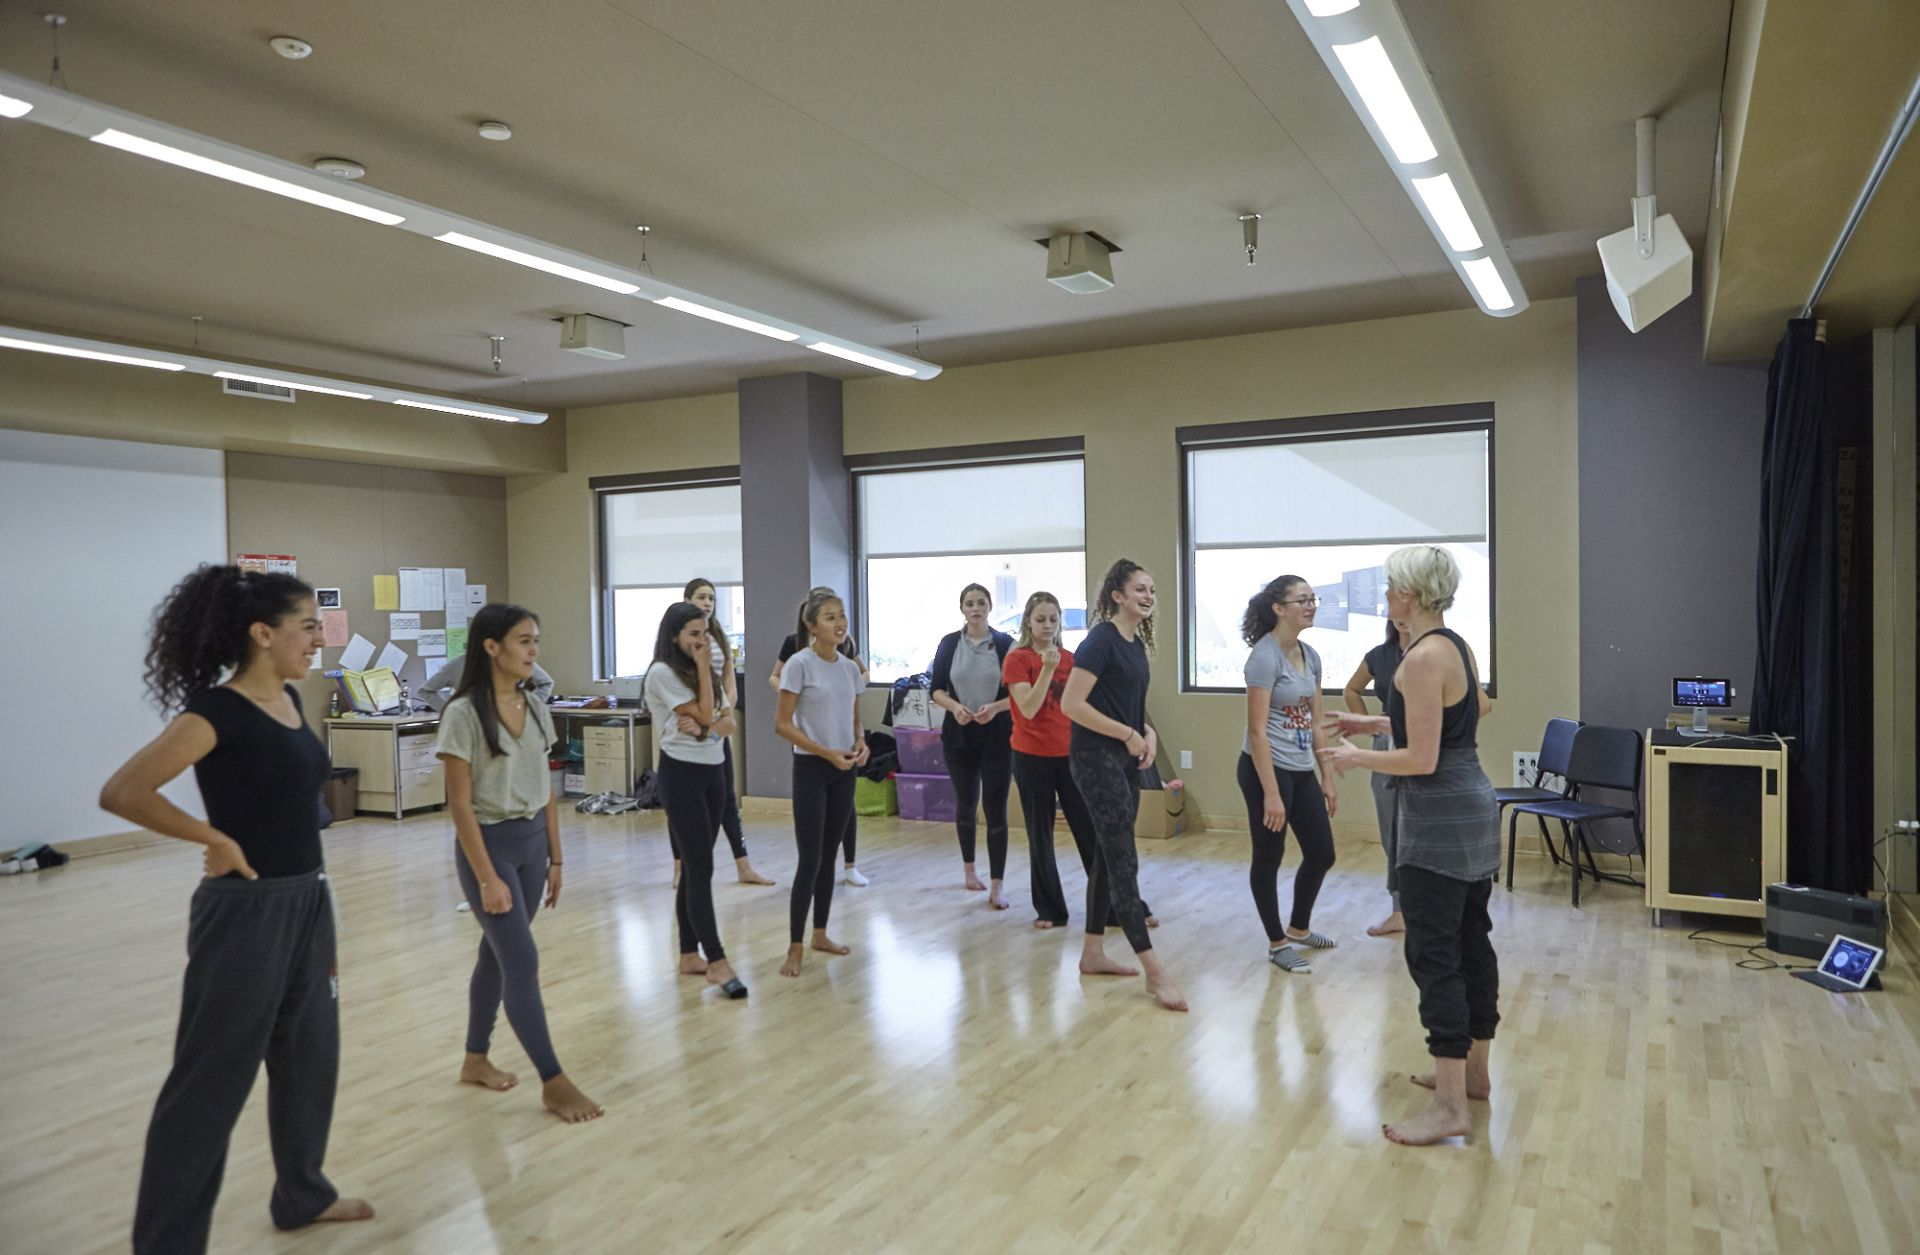 Students in both Middle and Upper School take dance classes in our beautiful dance studio, located in The Marciano Family Academic and Performing Arts Building.